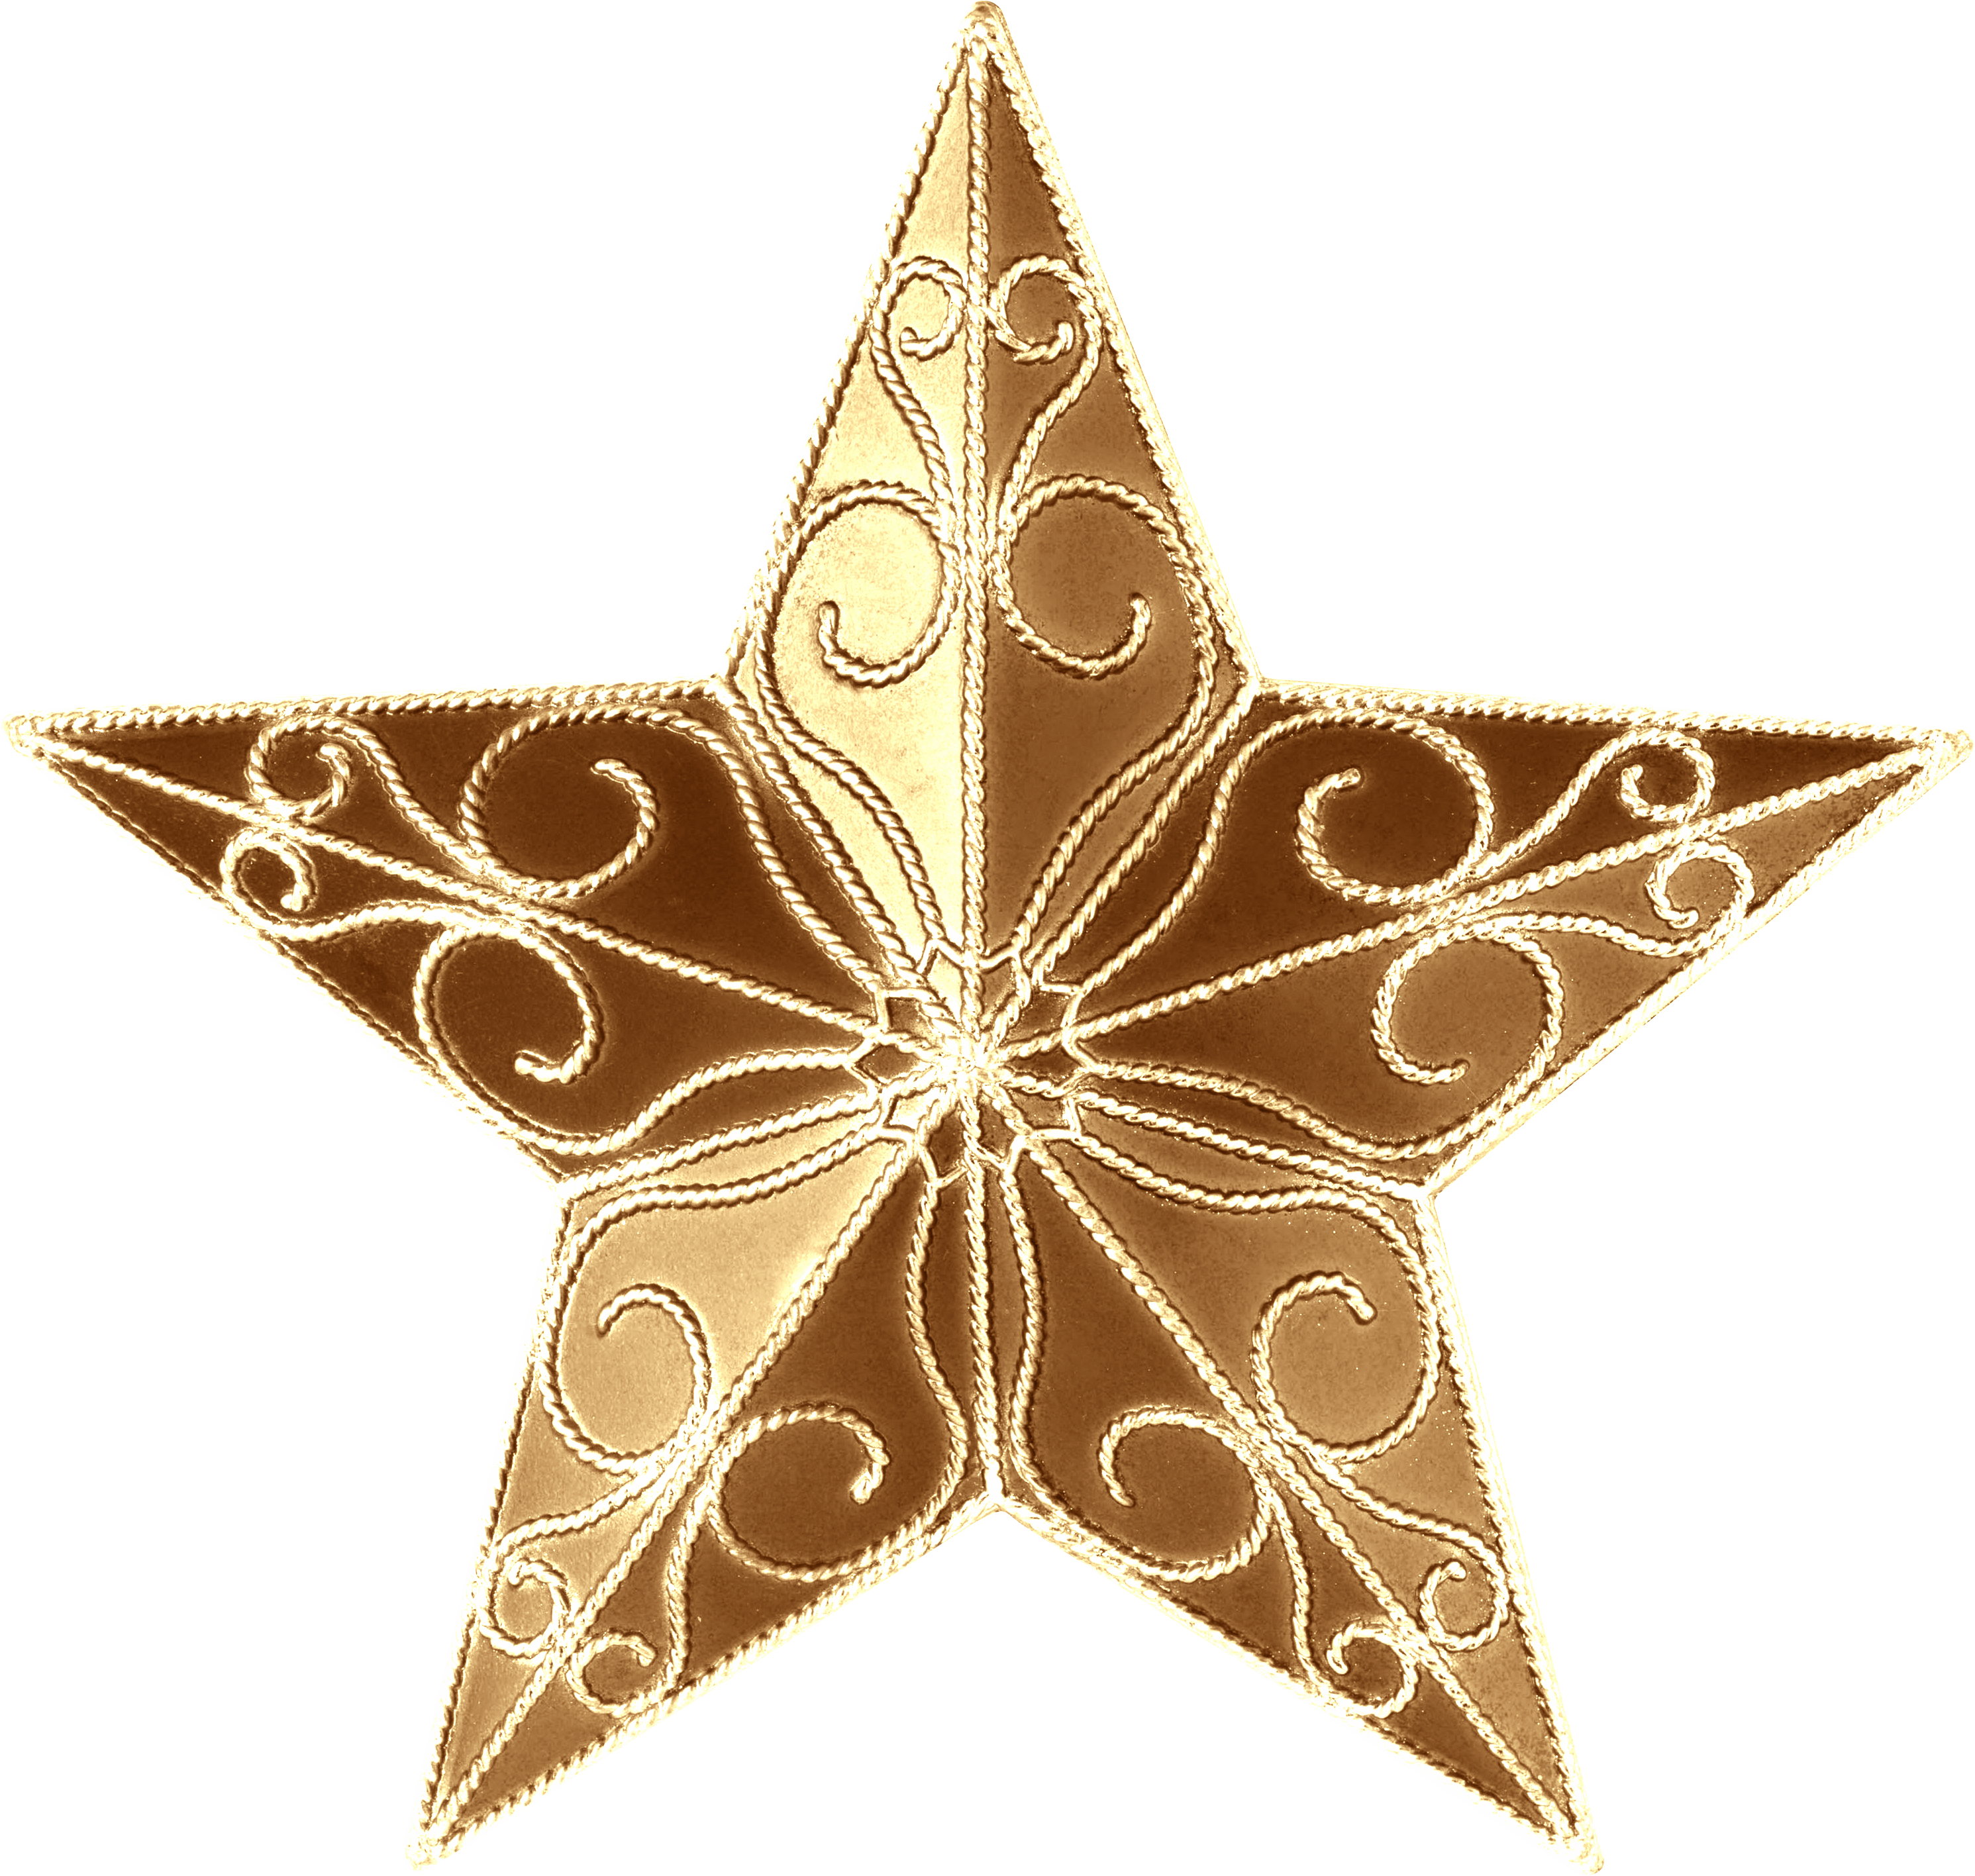 Holiday stars png. Christmas tree ornament topper